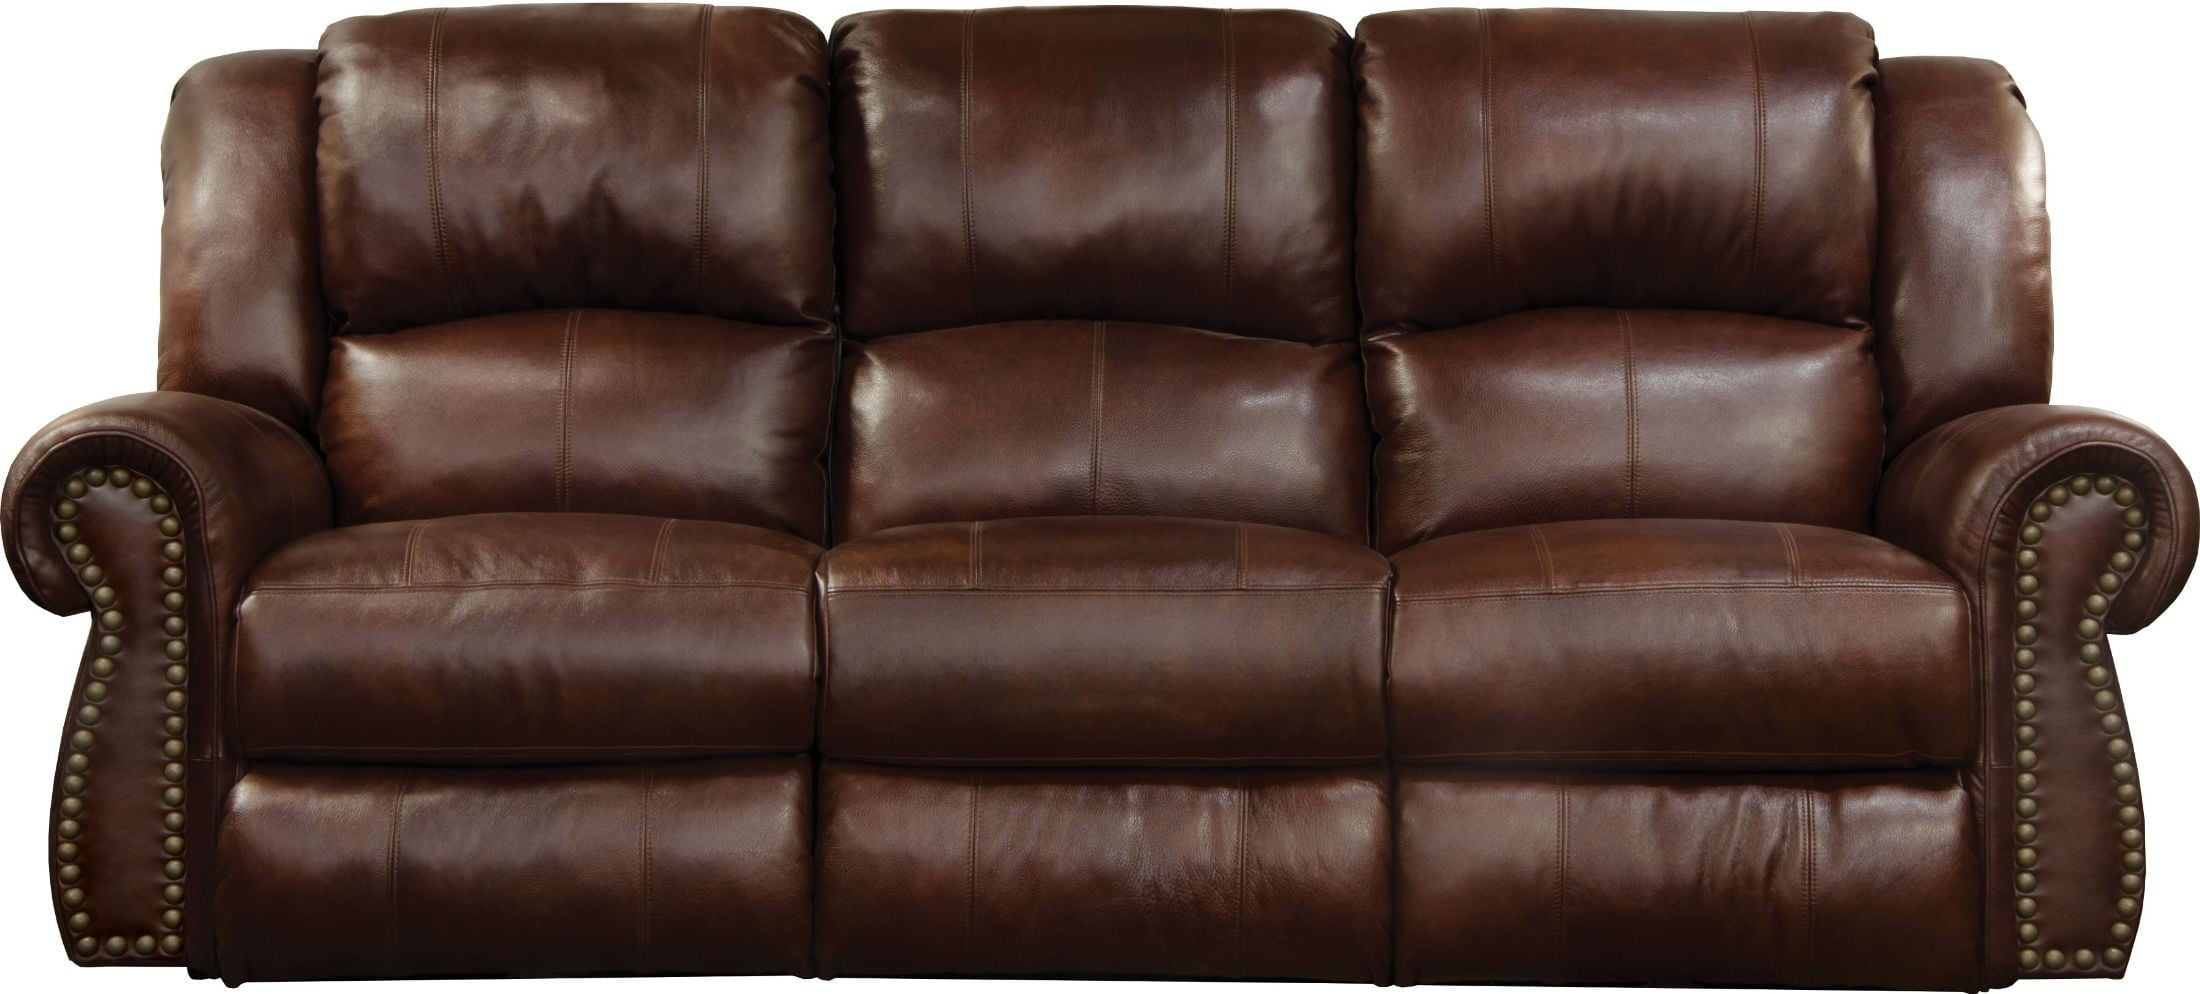 Messina Walnut Leather Lay Flat Power Reclining Sofa With